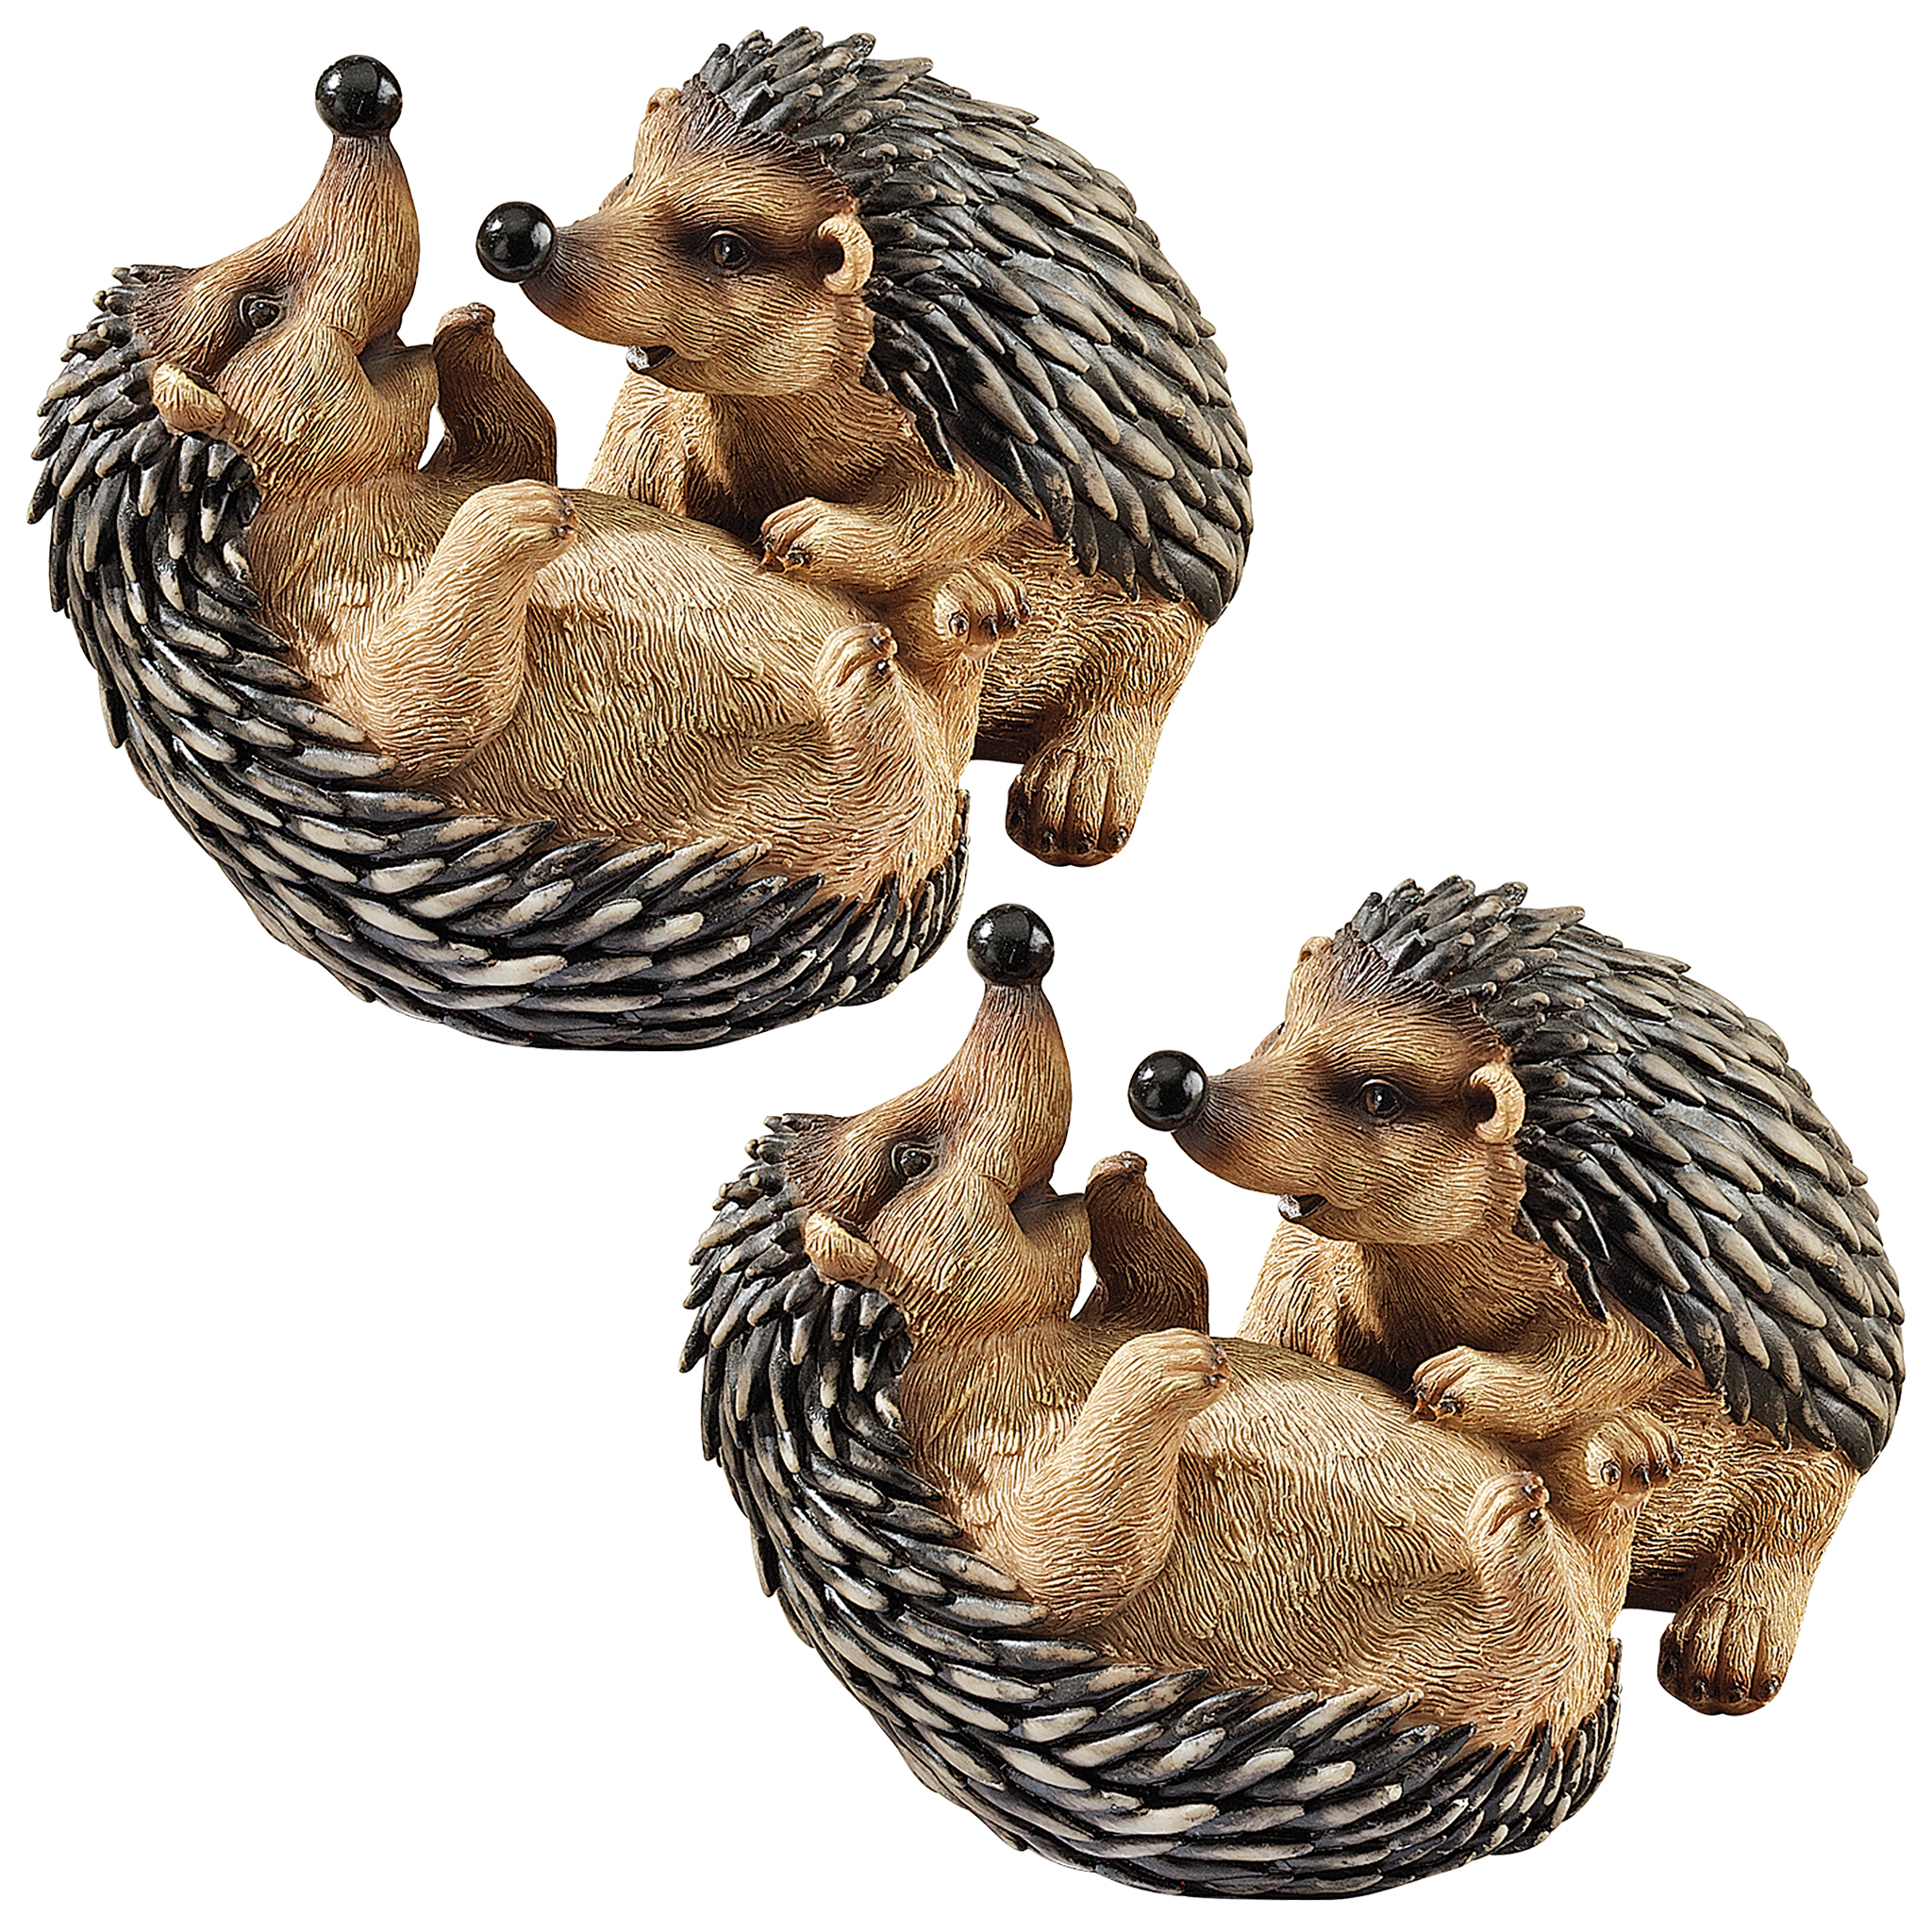 Hyper Hedgehogs Garden Statues: Set of Two by Design Toscano